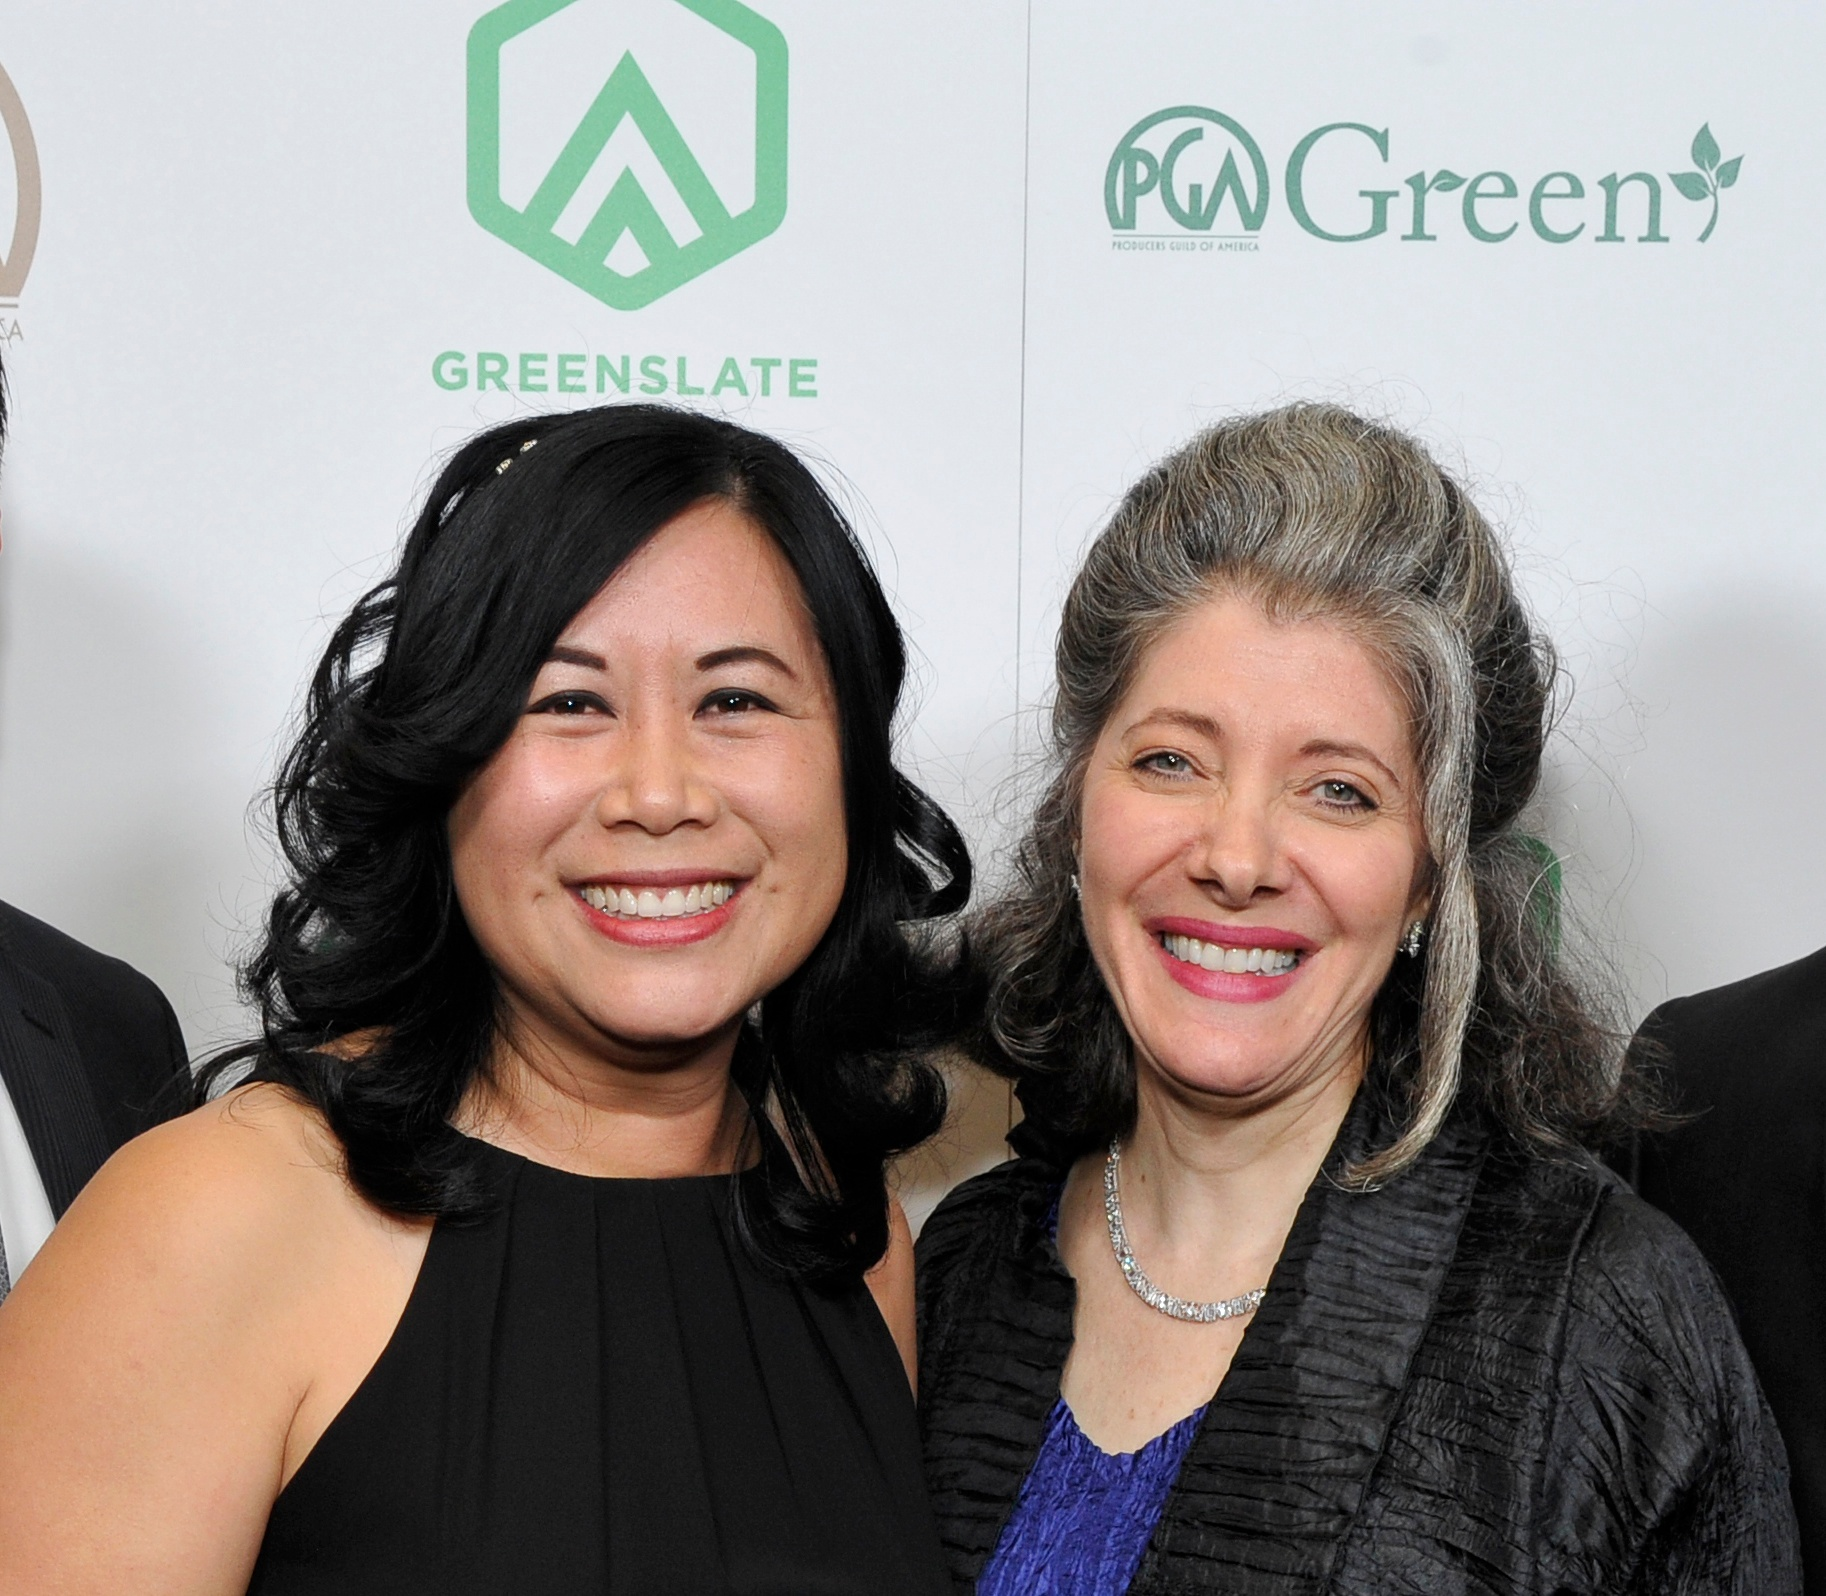 Producers Christina Lee Storm and Kay Rothman attend the 29th Annual Producers Guild Awards supported by GreenSlate at The Beverly Hilton Hotel on January 20, 2018 in Beverly Hills, California. (Photo by John Sciulli/Getty Images for GreenSlate)